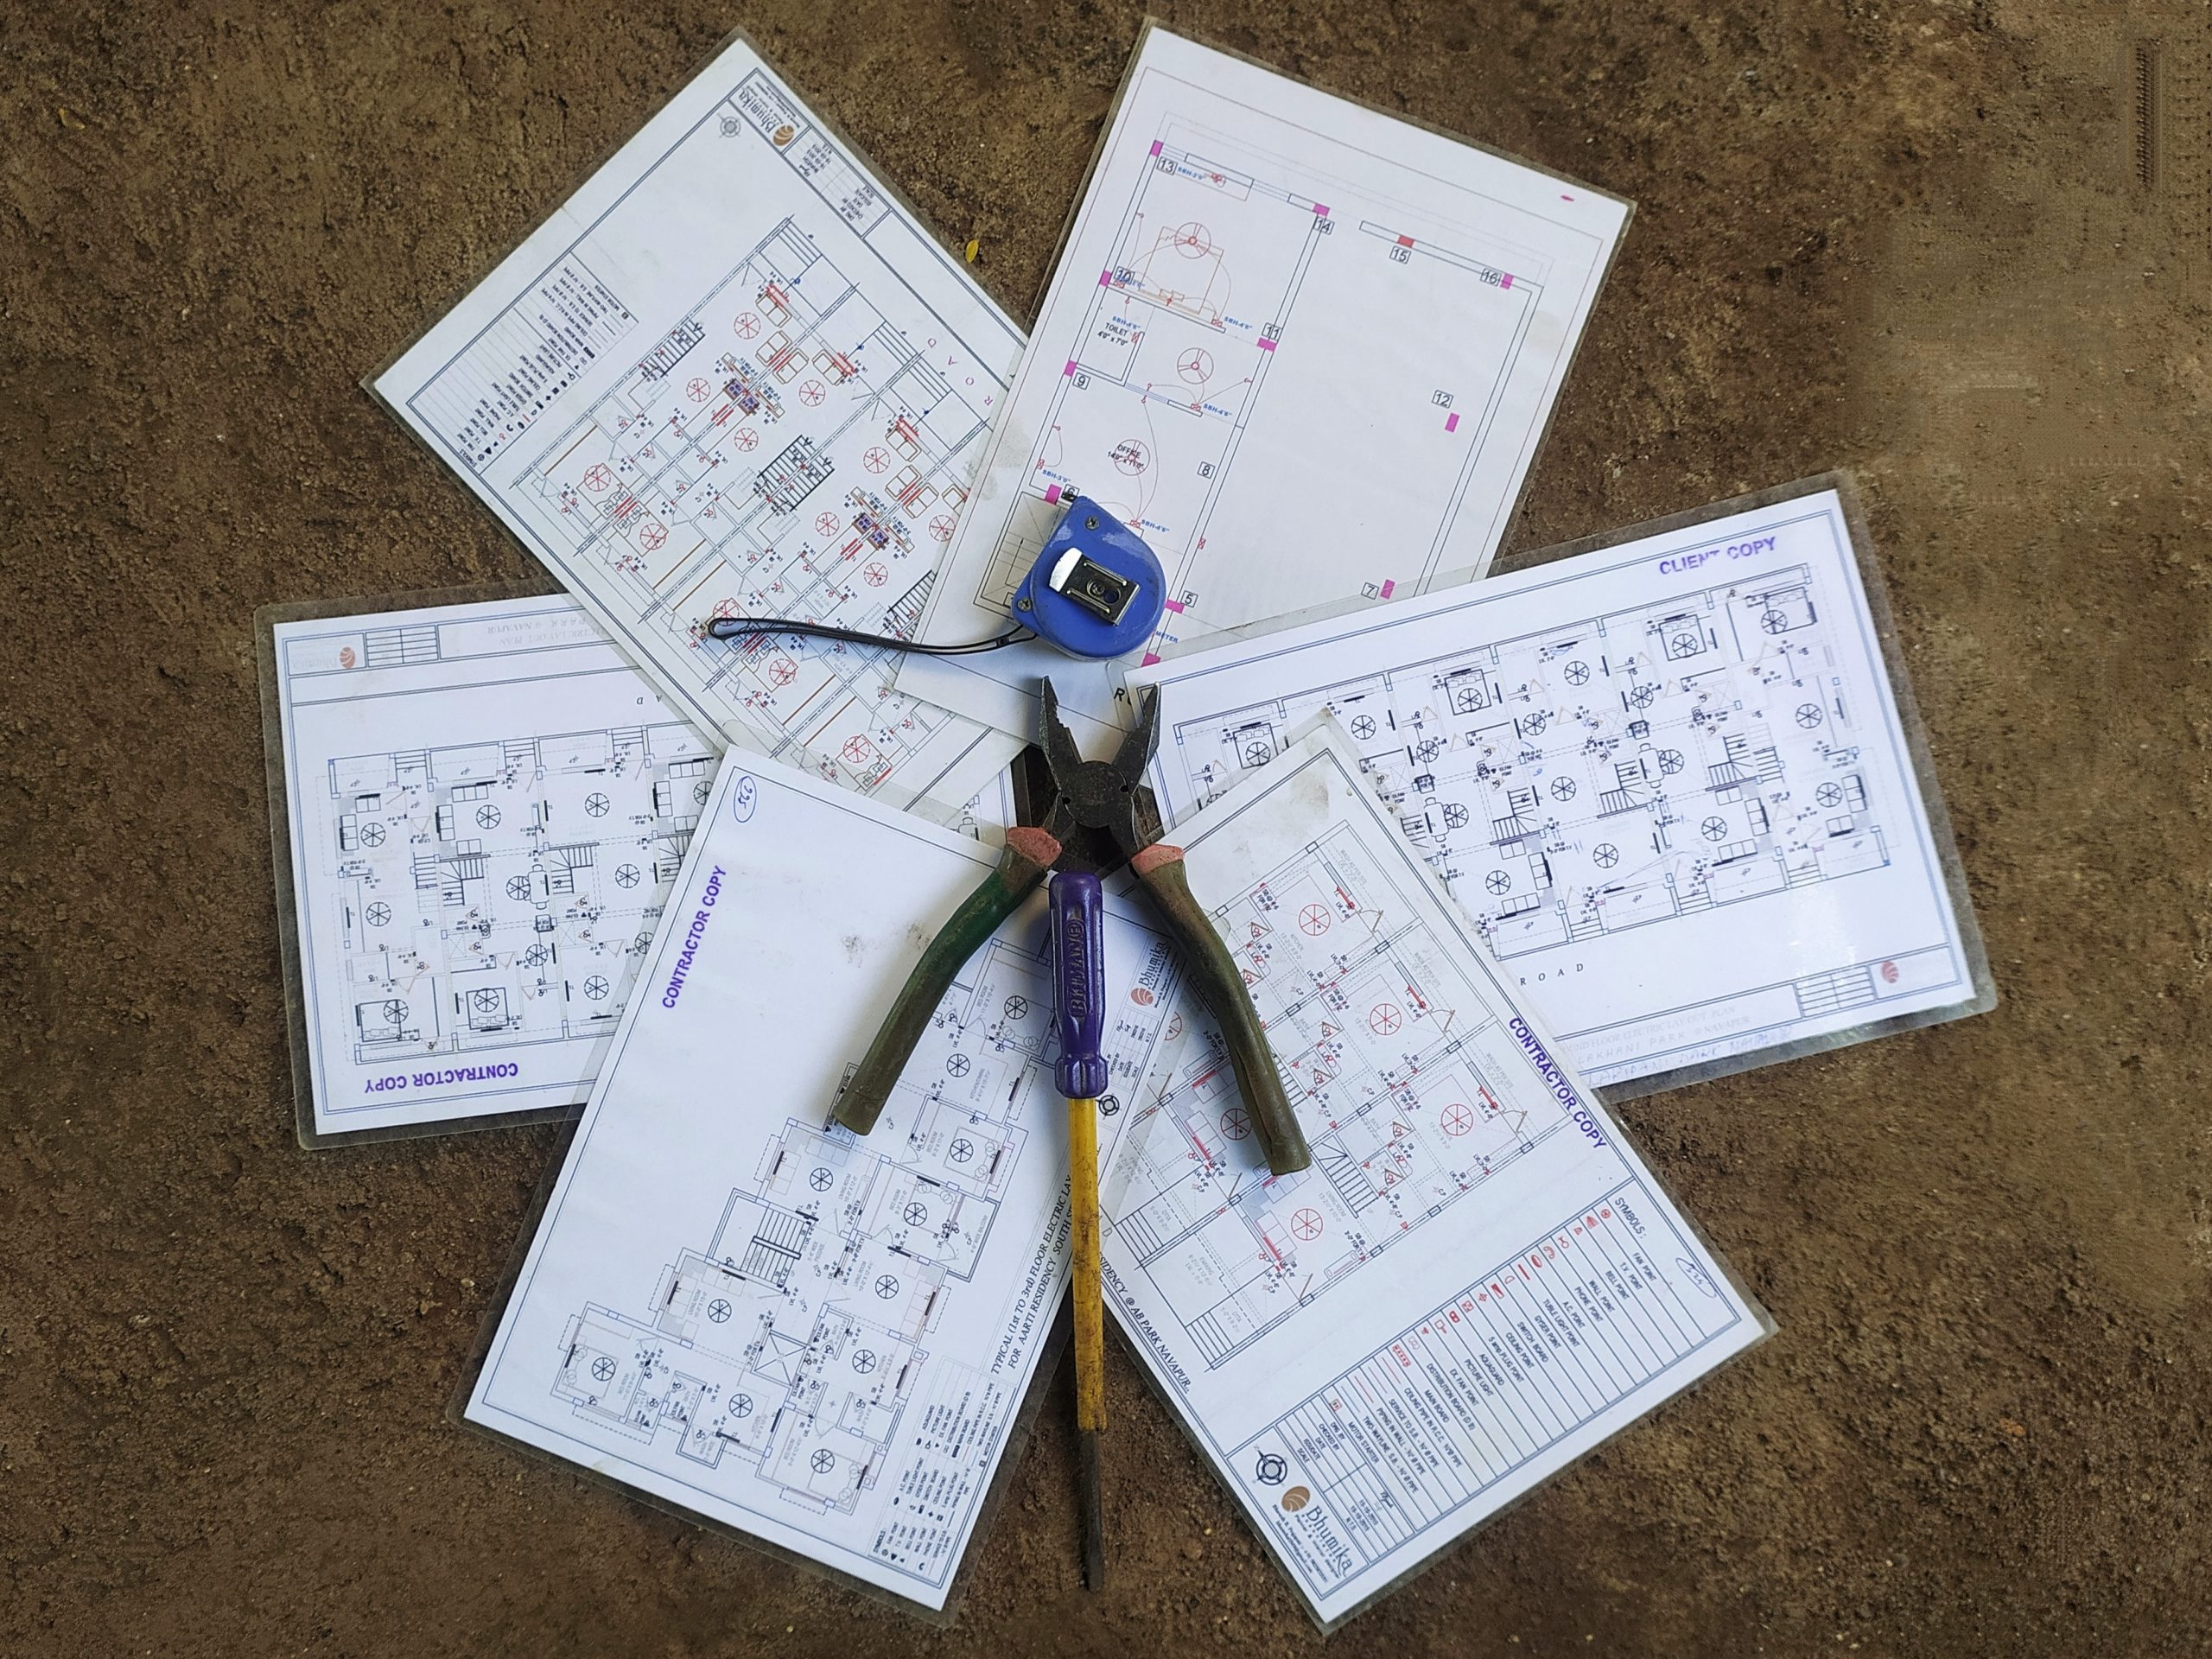 Engineering plans and tools